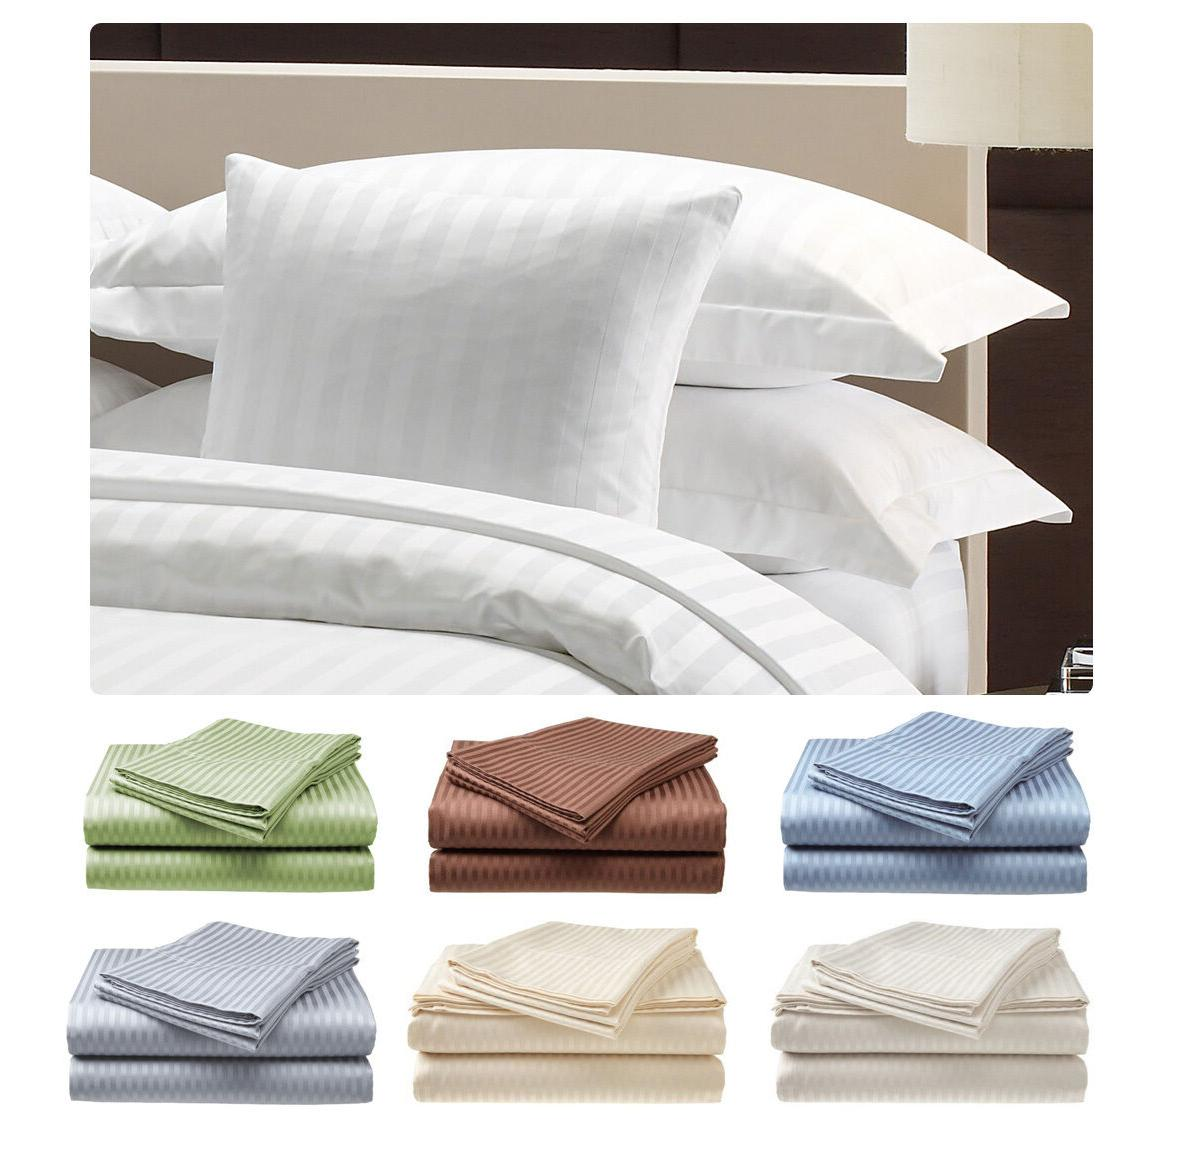 2 pack deluxe hotel 400 thread count